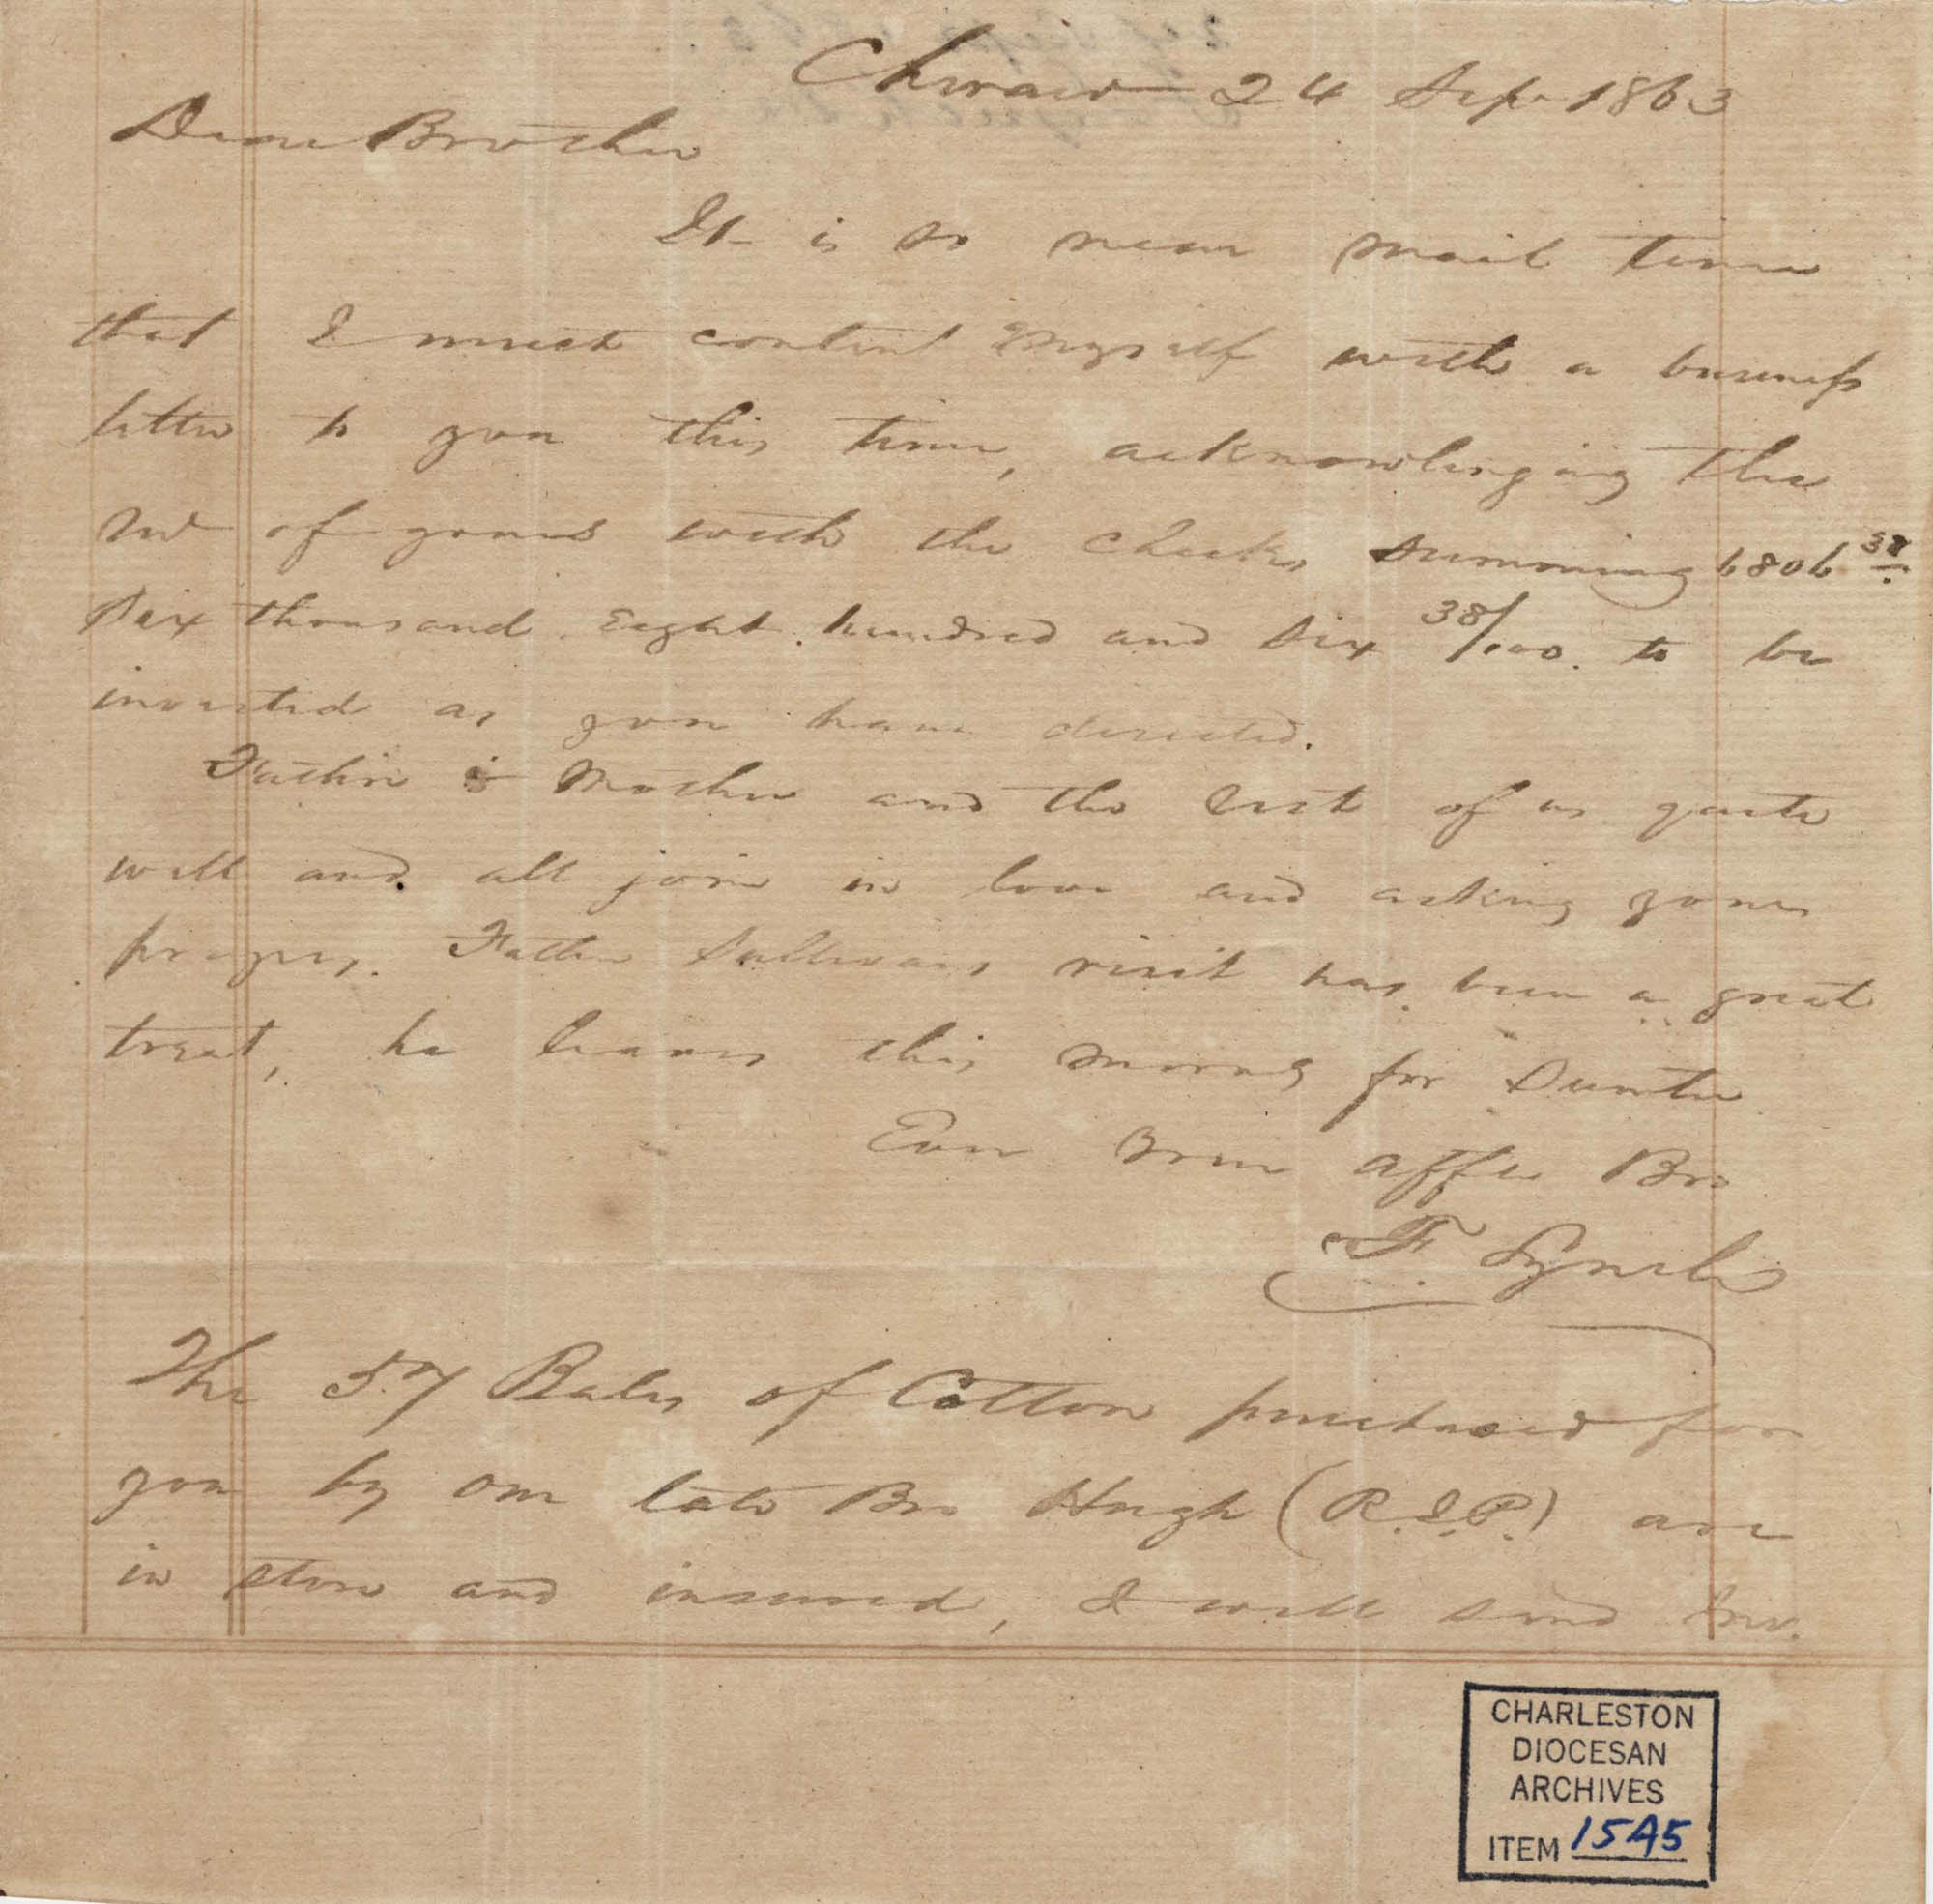 311. Francis Lynch to Bp Patrick Lynch -- September 24, 1863